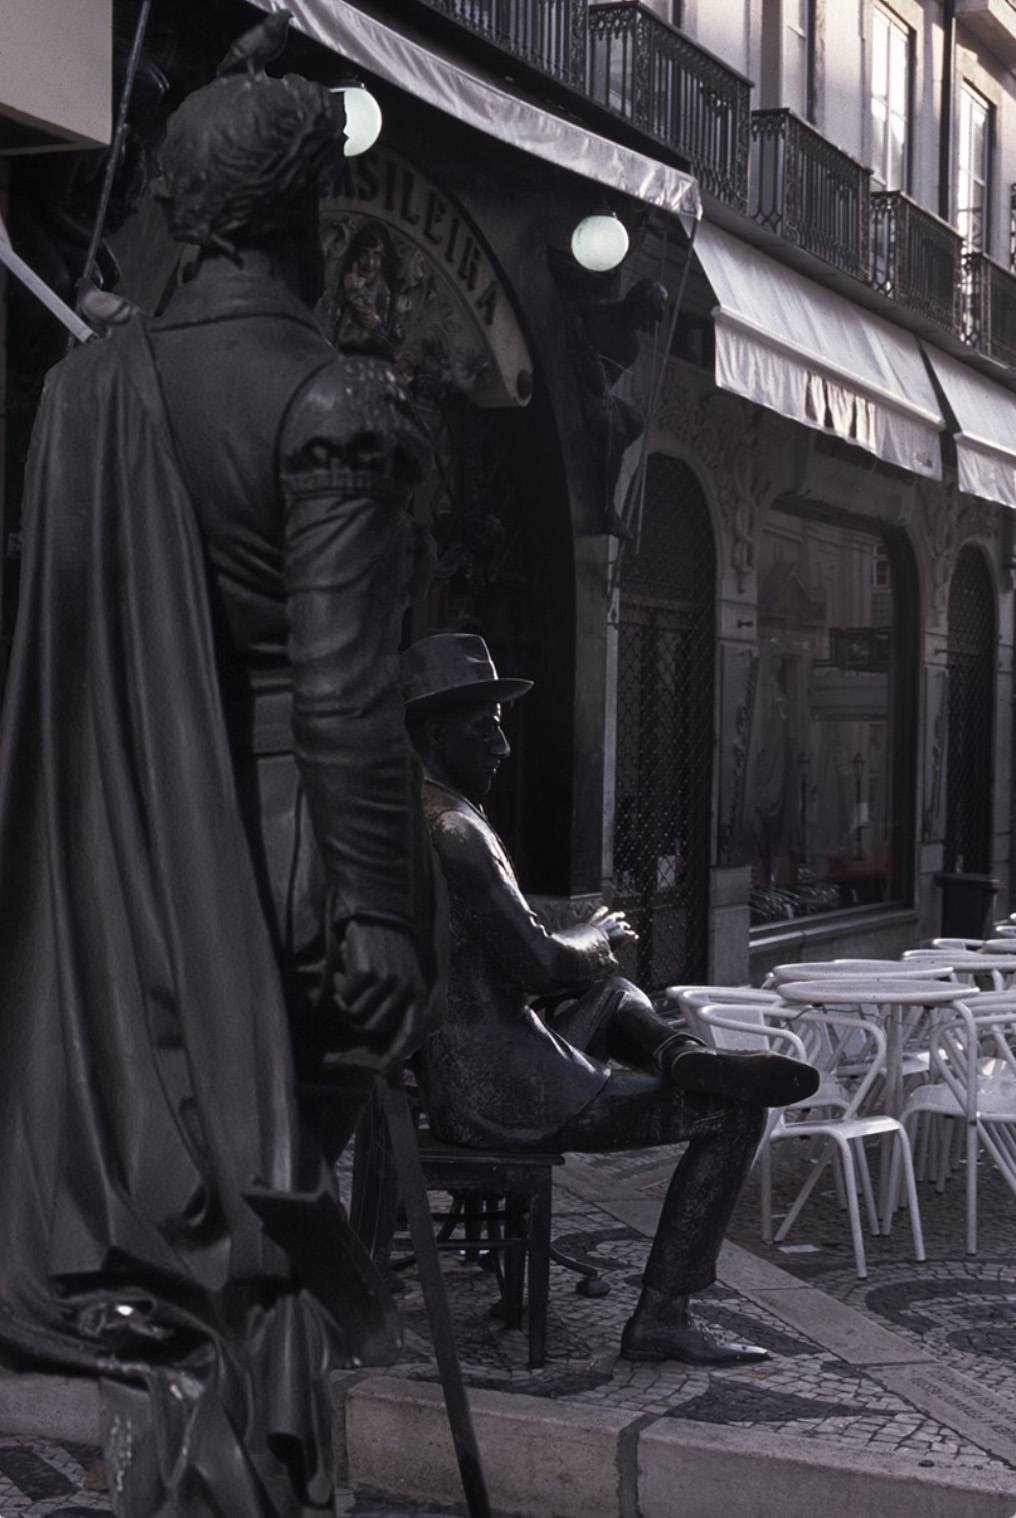 Statues of two writers gathered at a cafe.